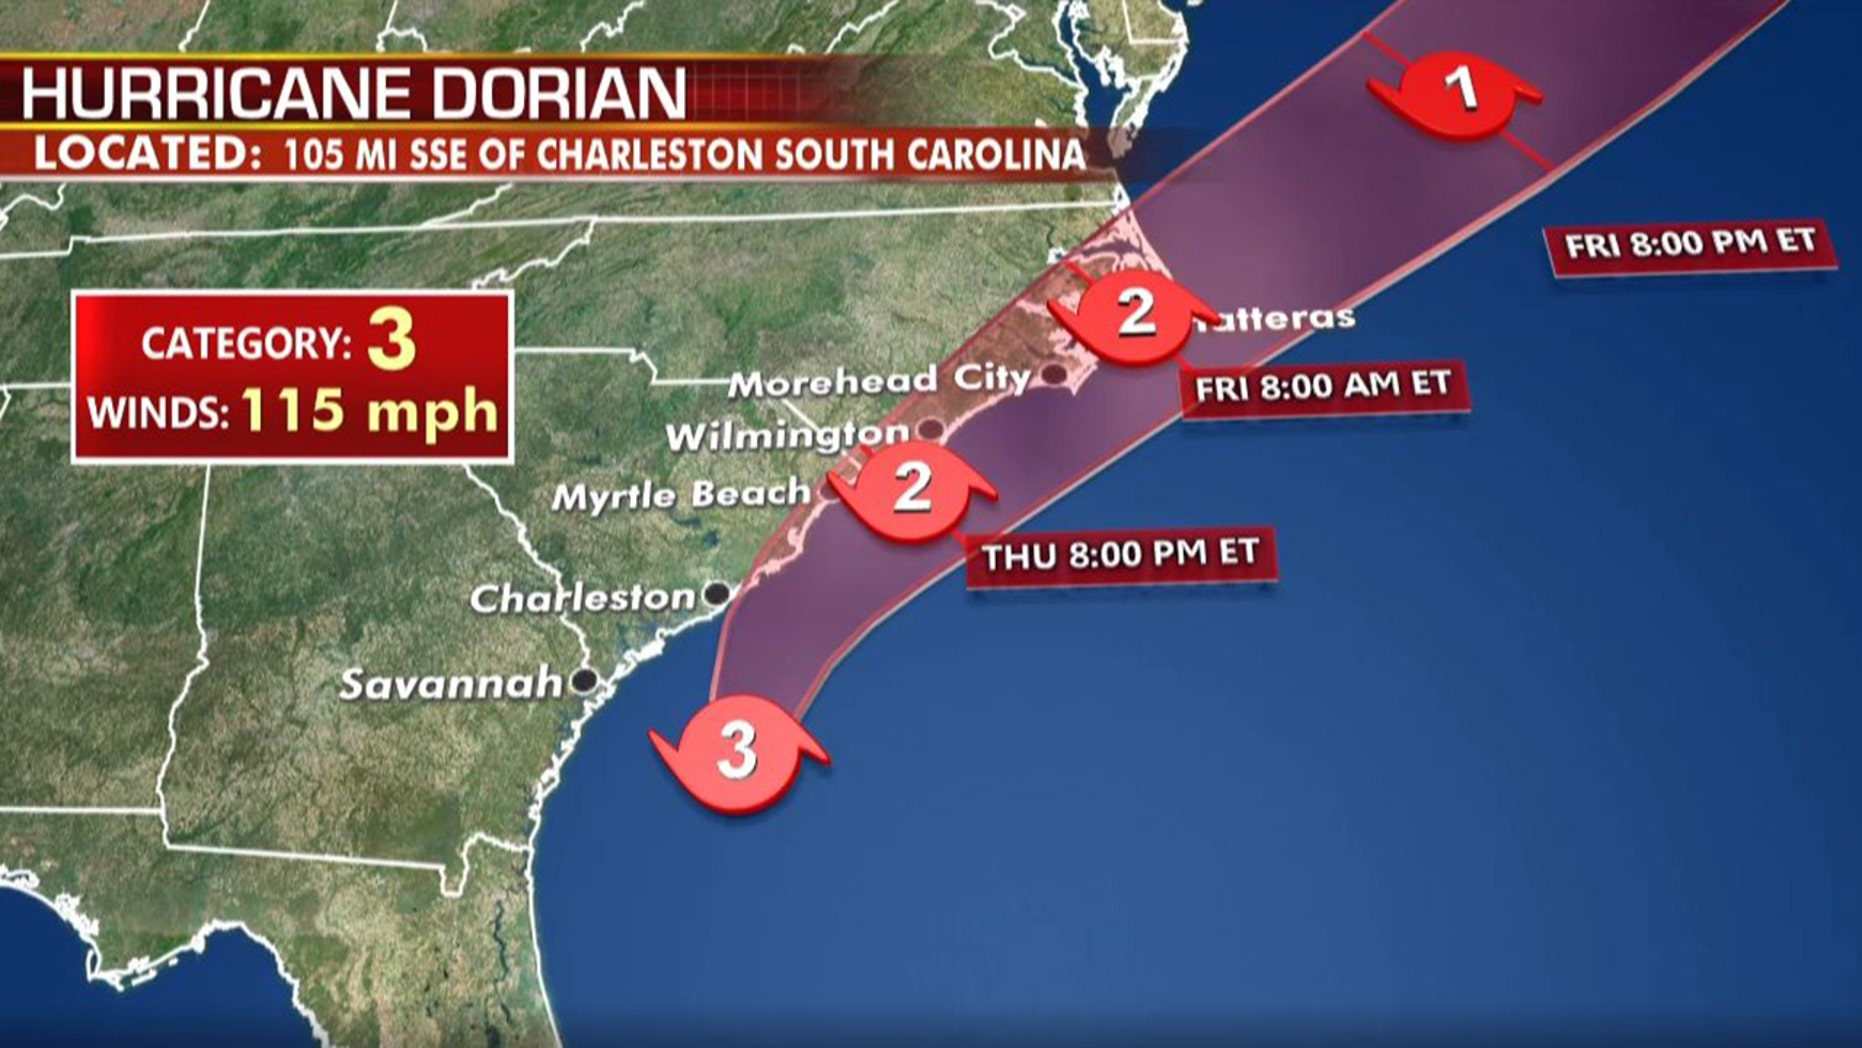 Westlake Legal Group hurricane-dorian-11pm-wed-update-cat-3 Hurricane Dorian regains strength as Category 3 storm as Carolinas brace for impact fox-news/columns/fox-news-first fox news fnc/us fnc article 065ff383-66f8-5d5d-9413-c3b2267286f1